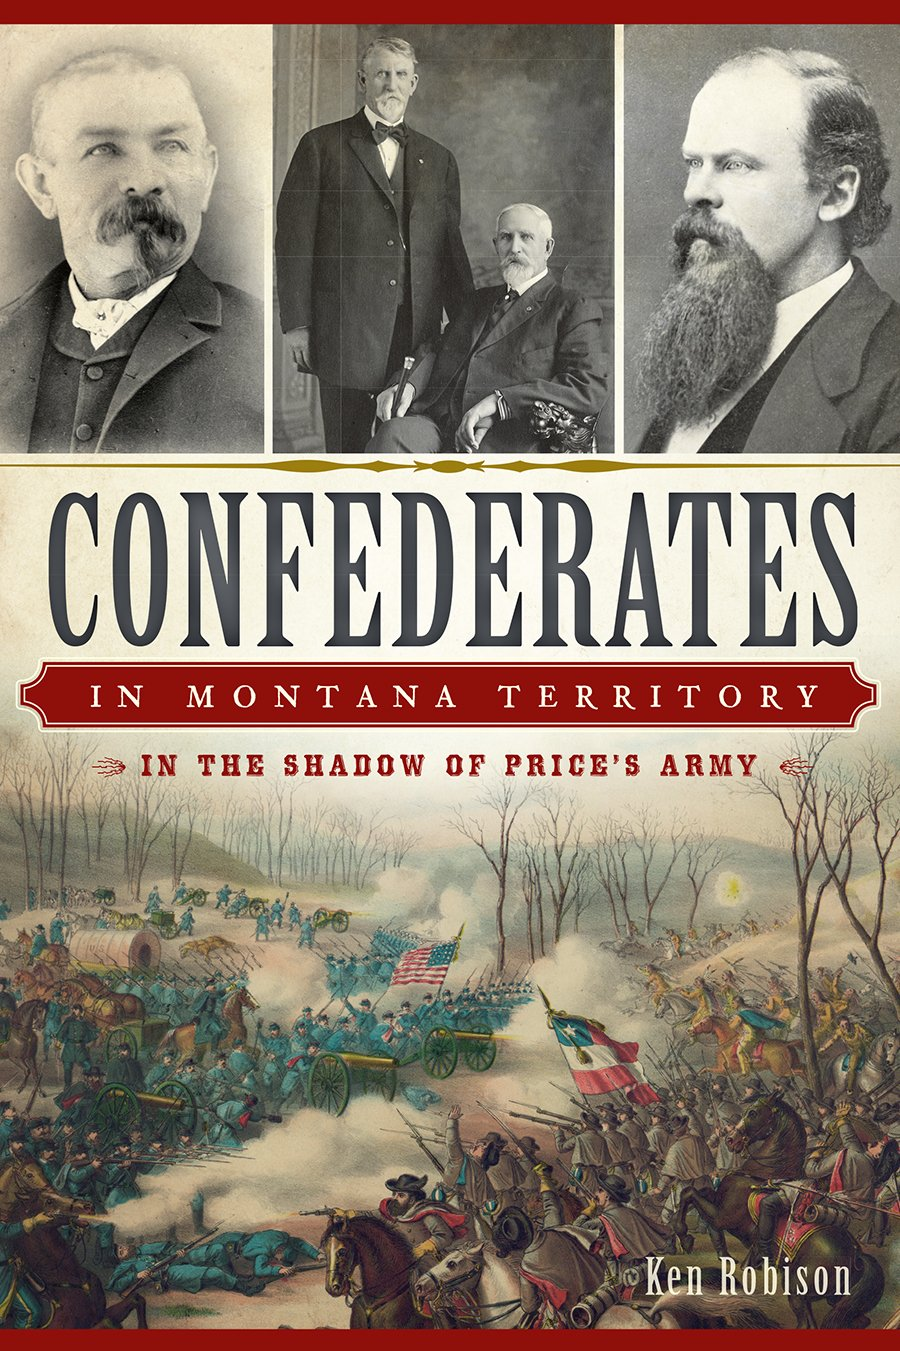 Read Online Confederates in Montana Territory:: In the Shadow of Price's Army (Civil War Series) pdf